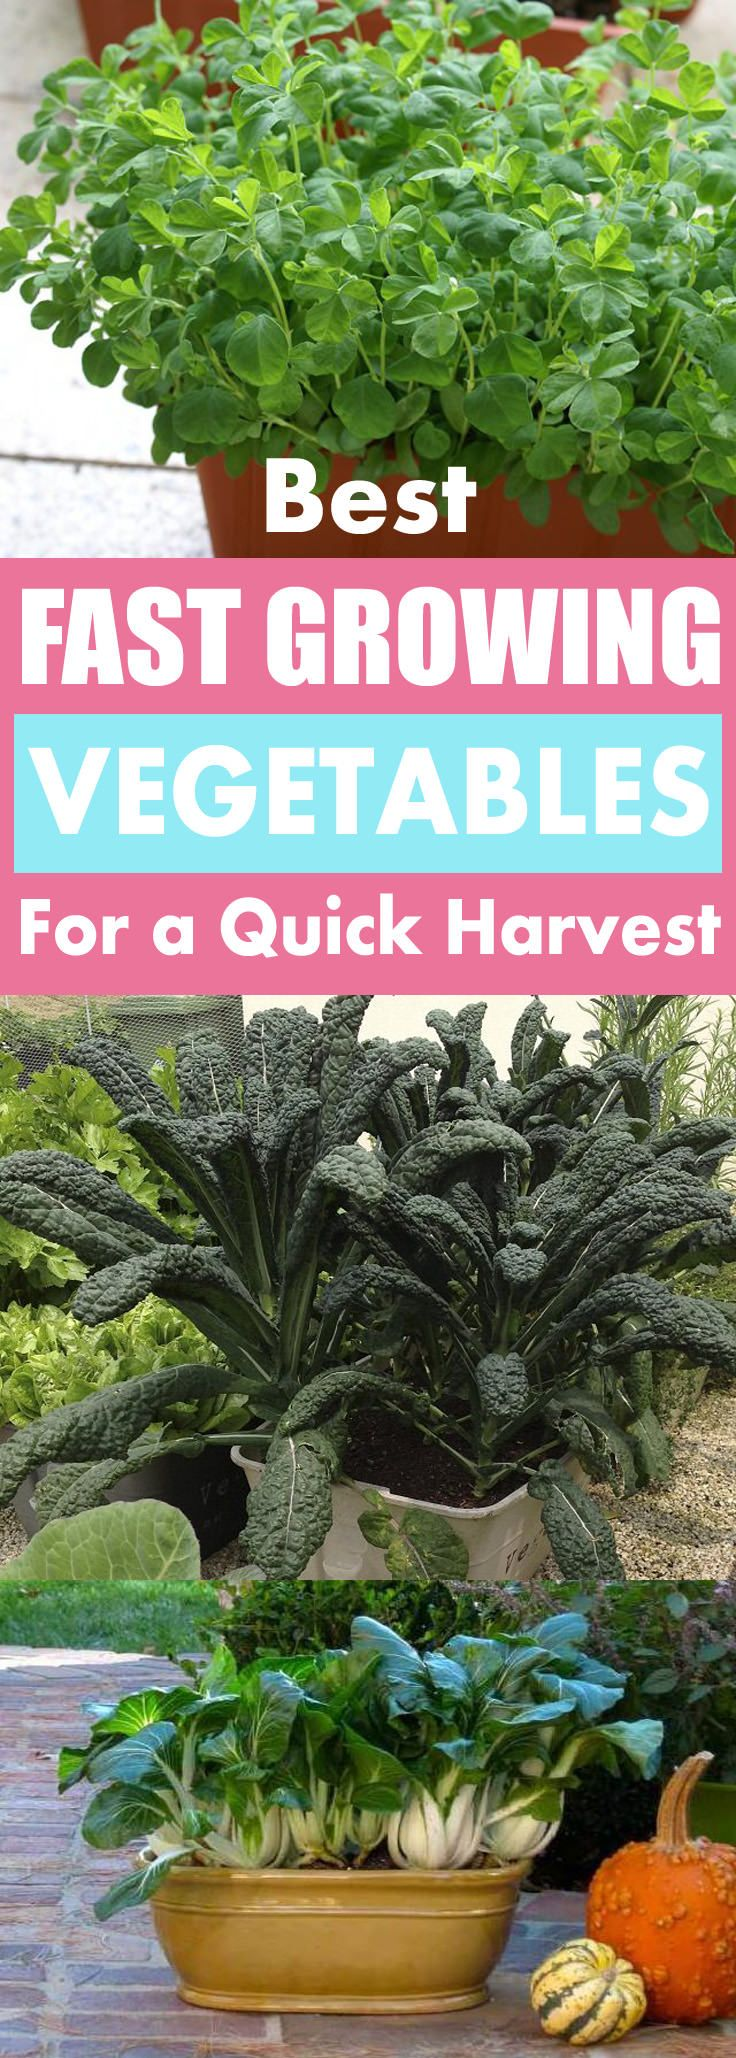 370 best images about container vegetable gardens on pinterest - Best vegetables for container gardening ...